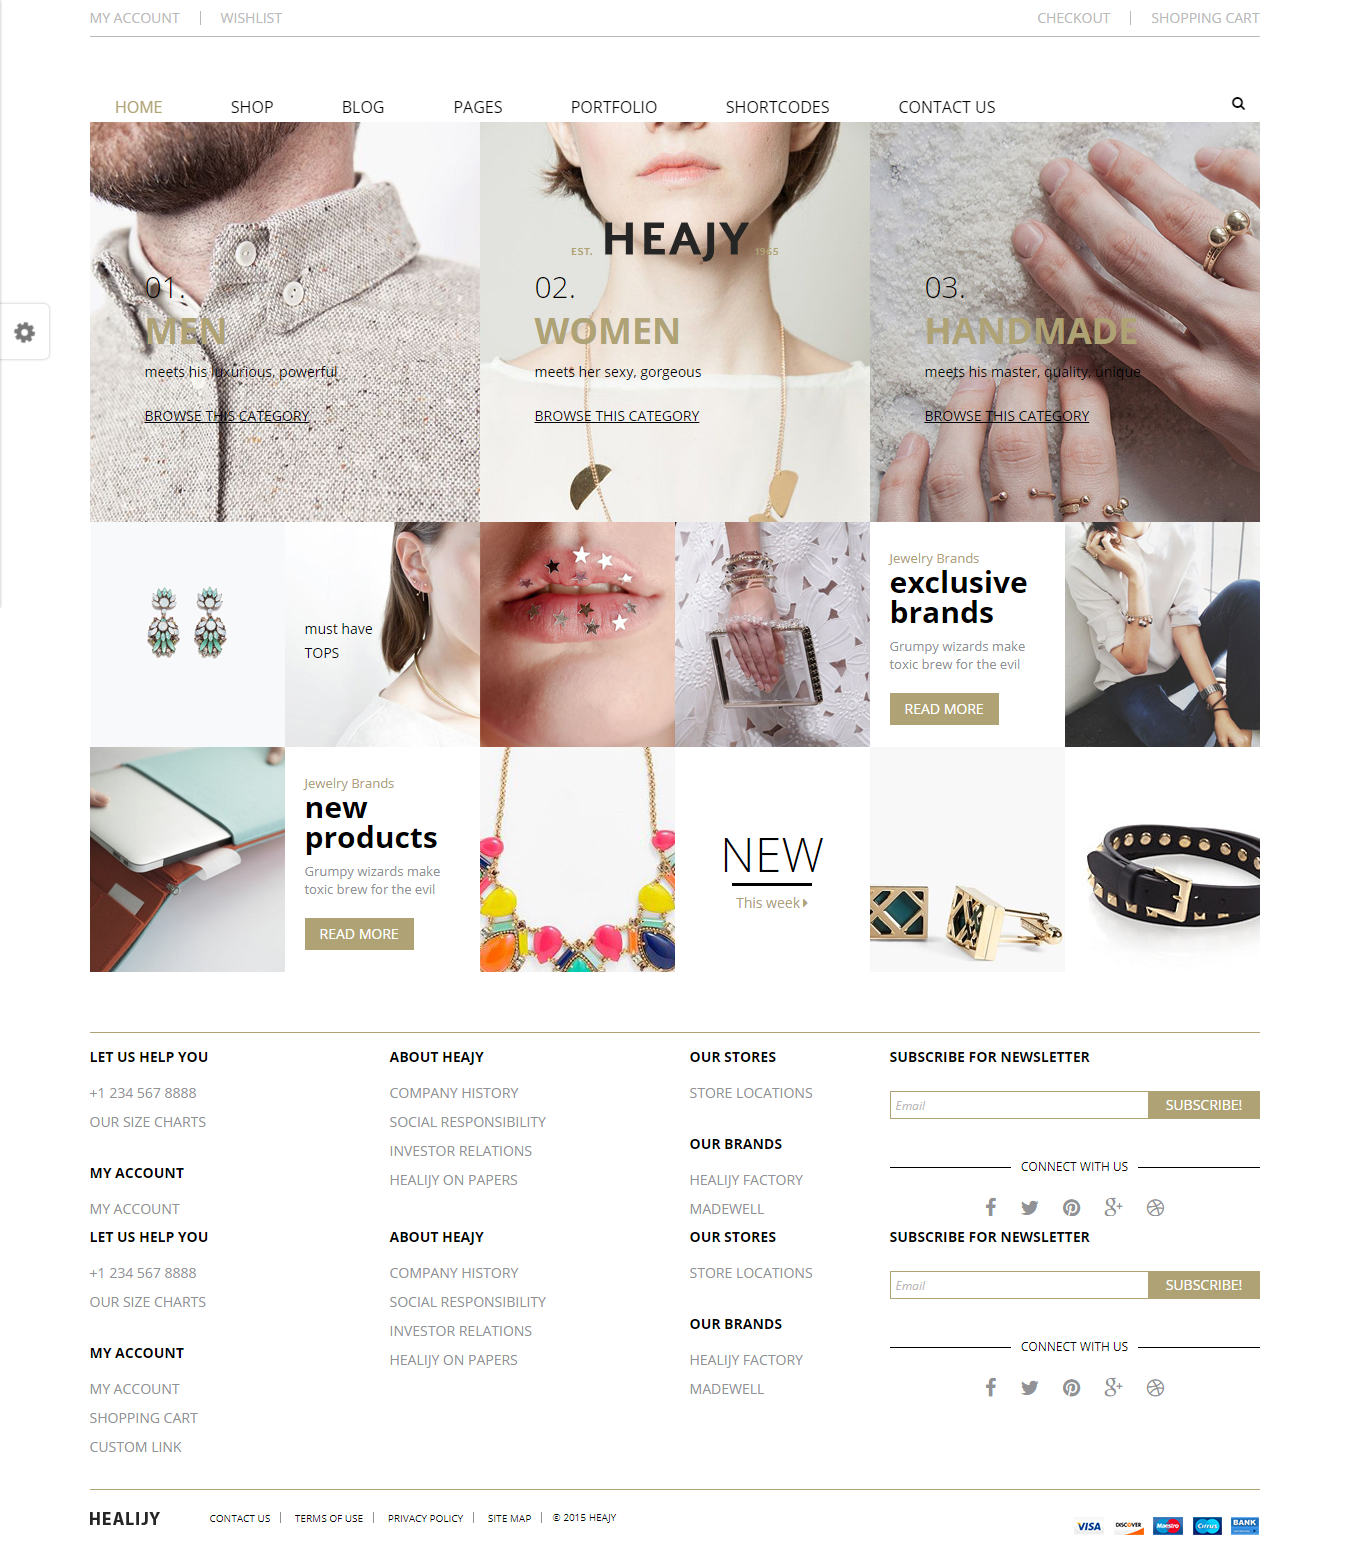 heajy best premium fashion wordpress theme - 10+ Best Premium Fashion WordPress Themes